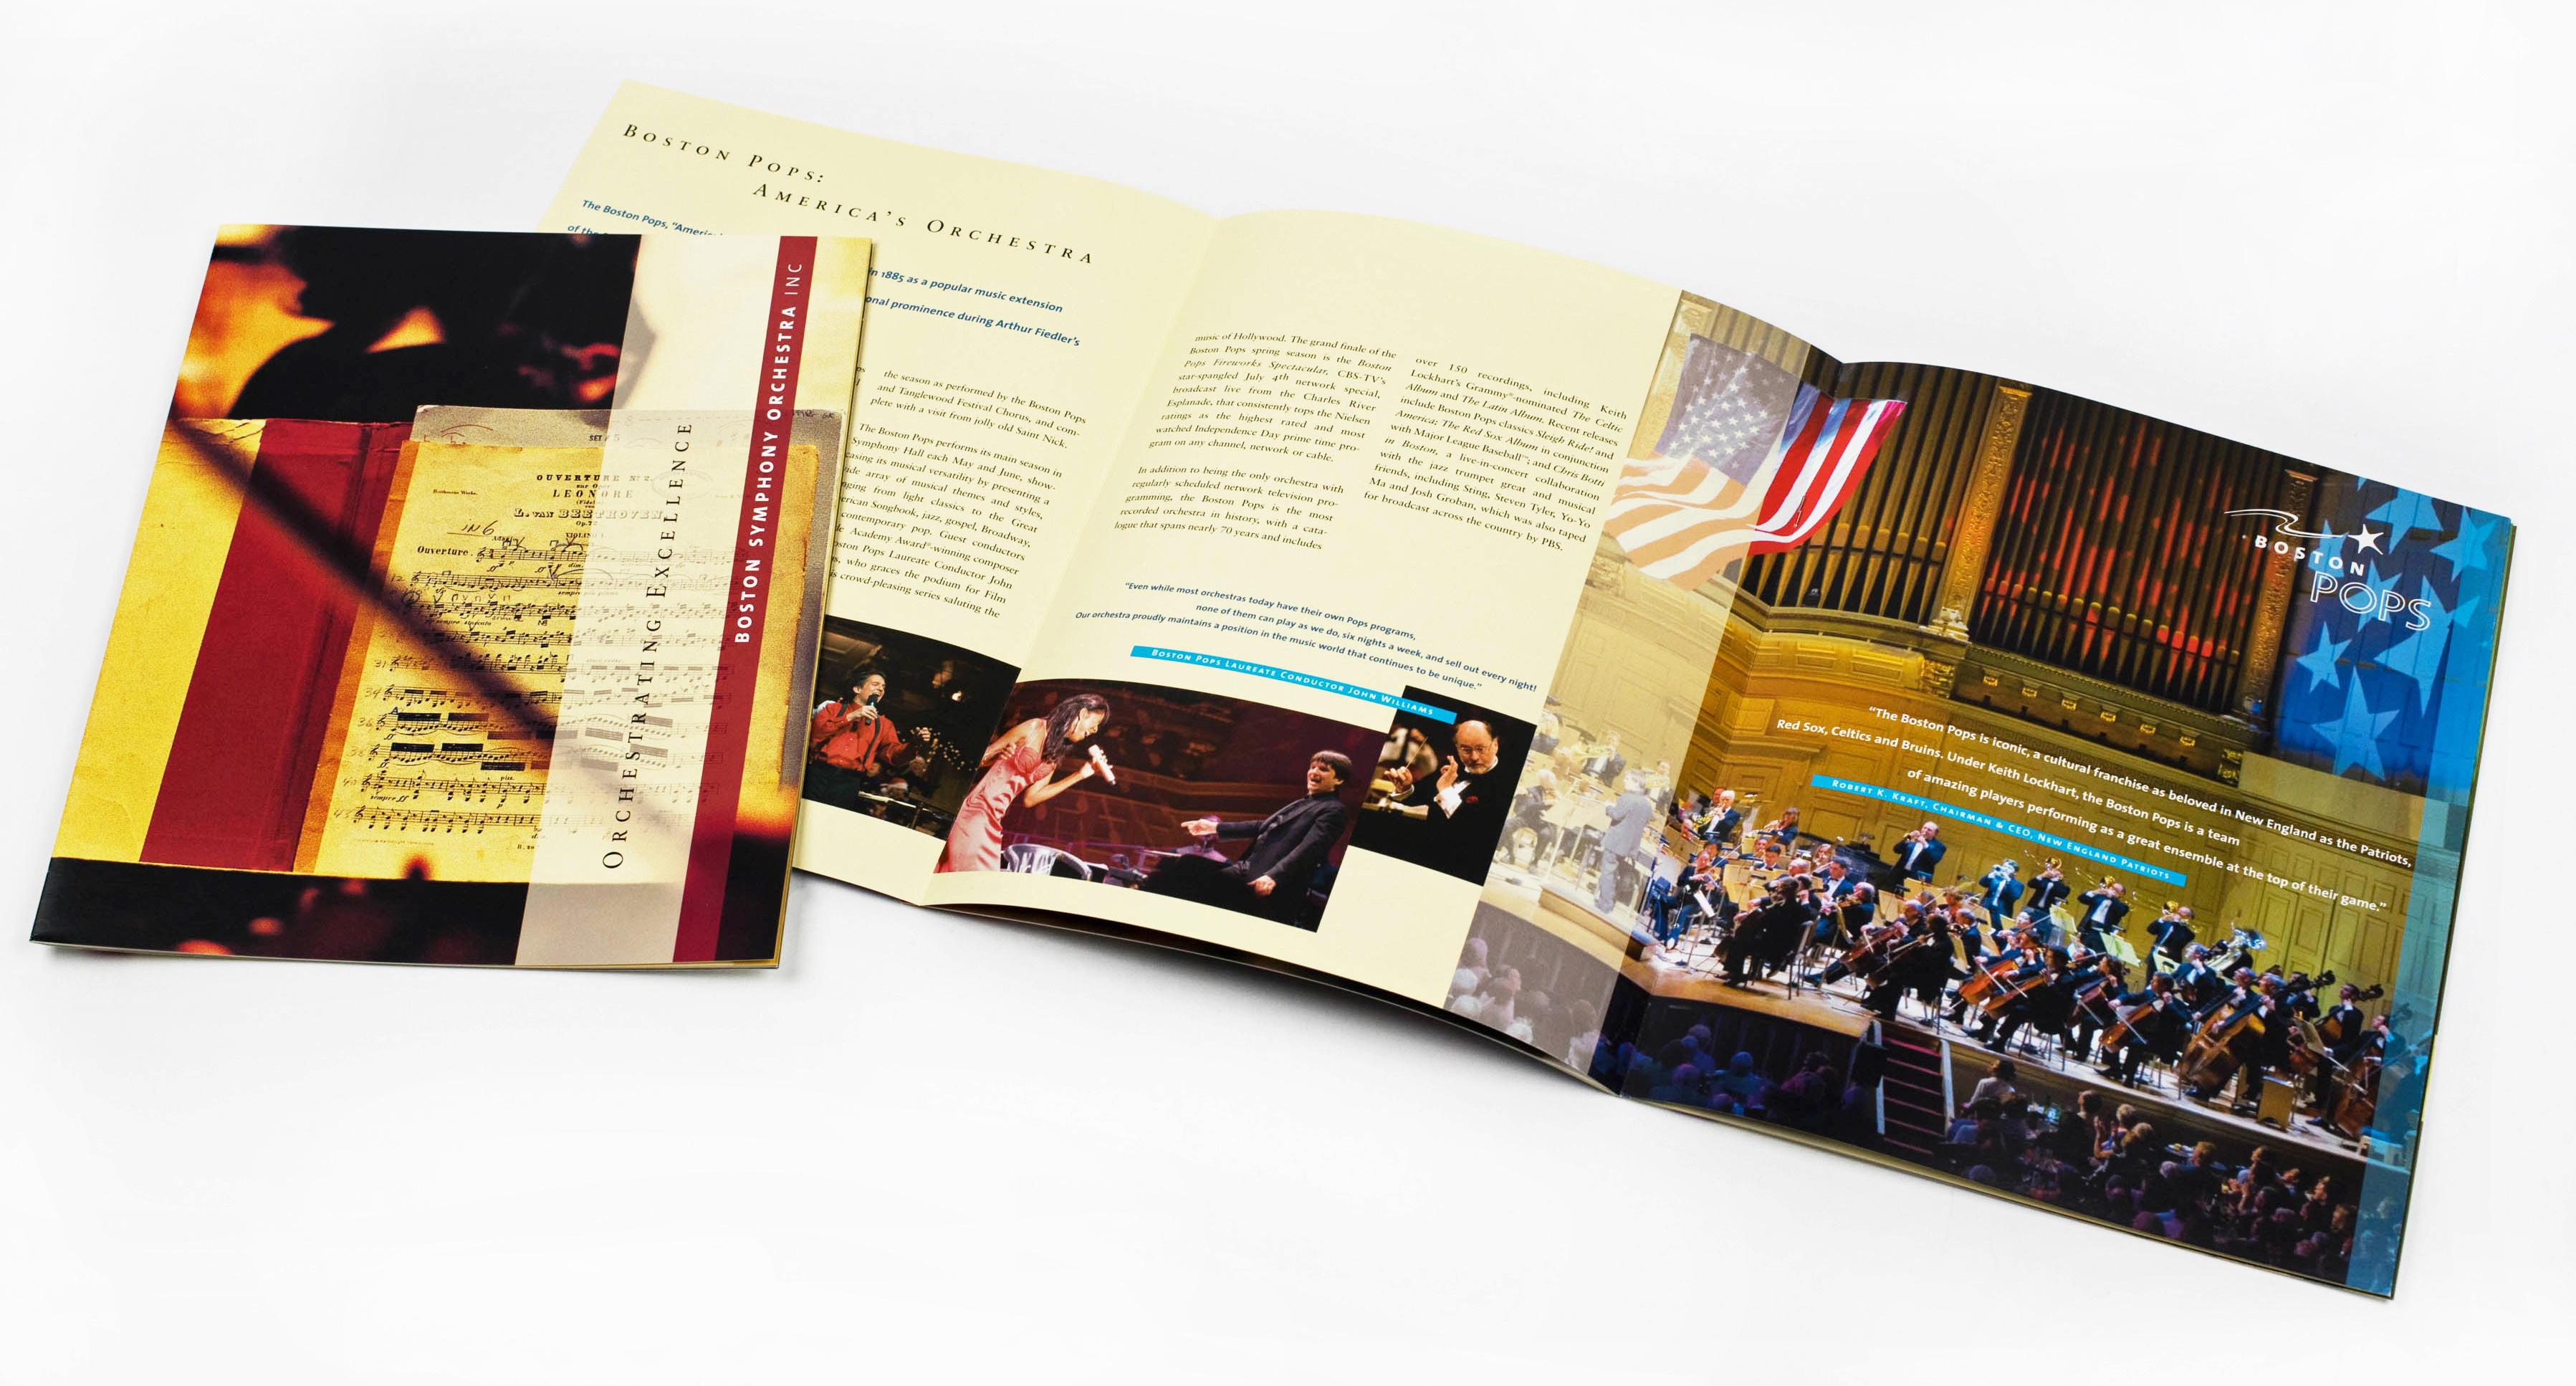 Boston Symphony Orchestra Corporate Sponsorship brochure cover and interior spread